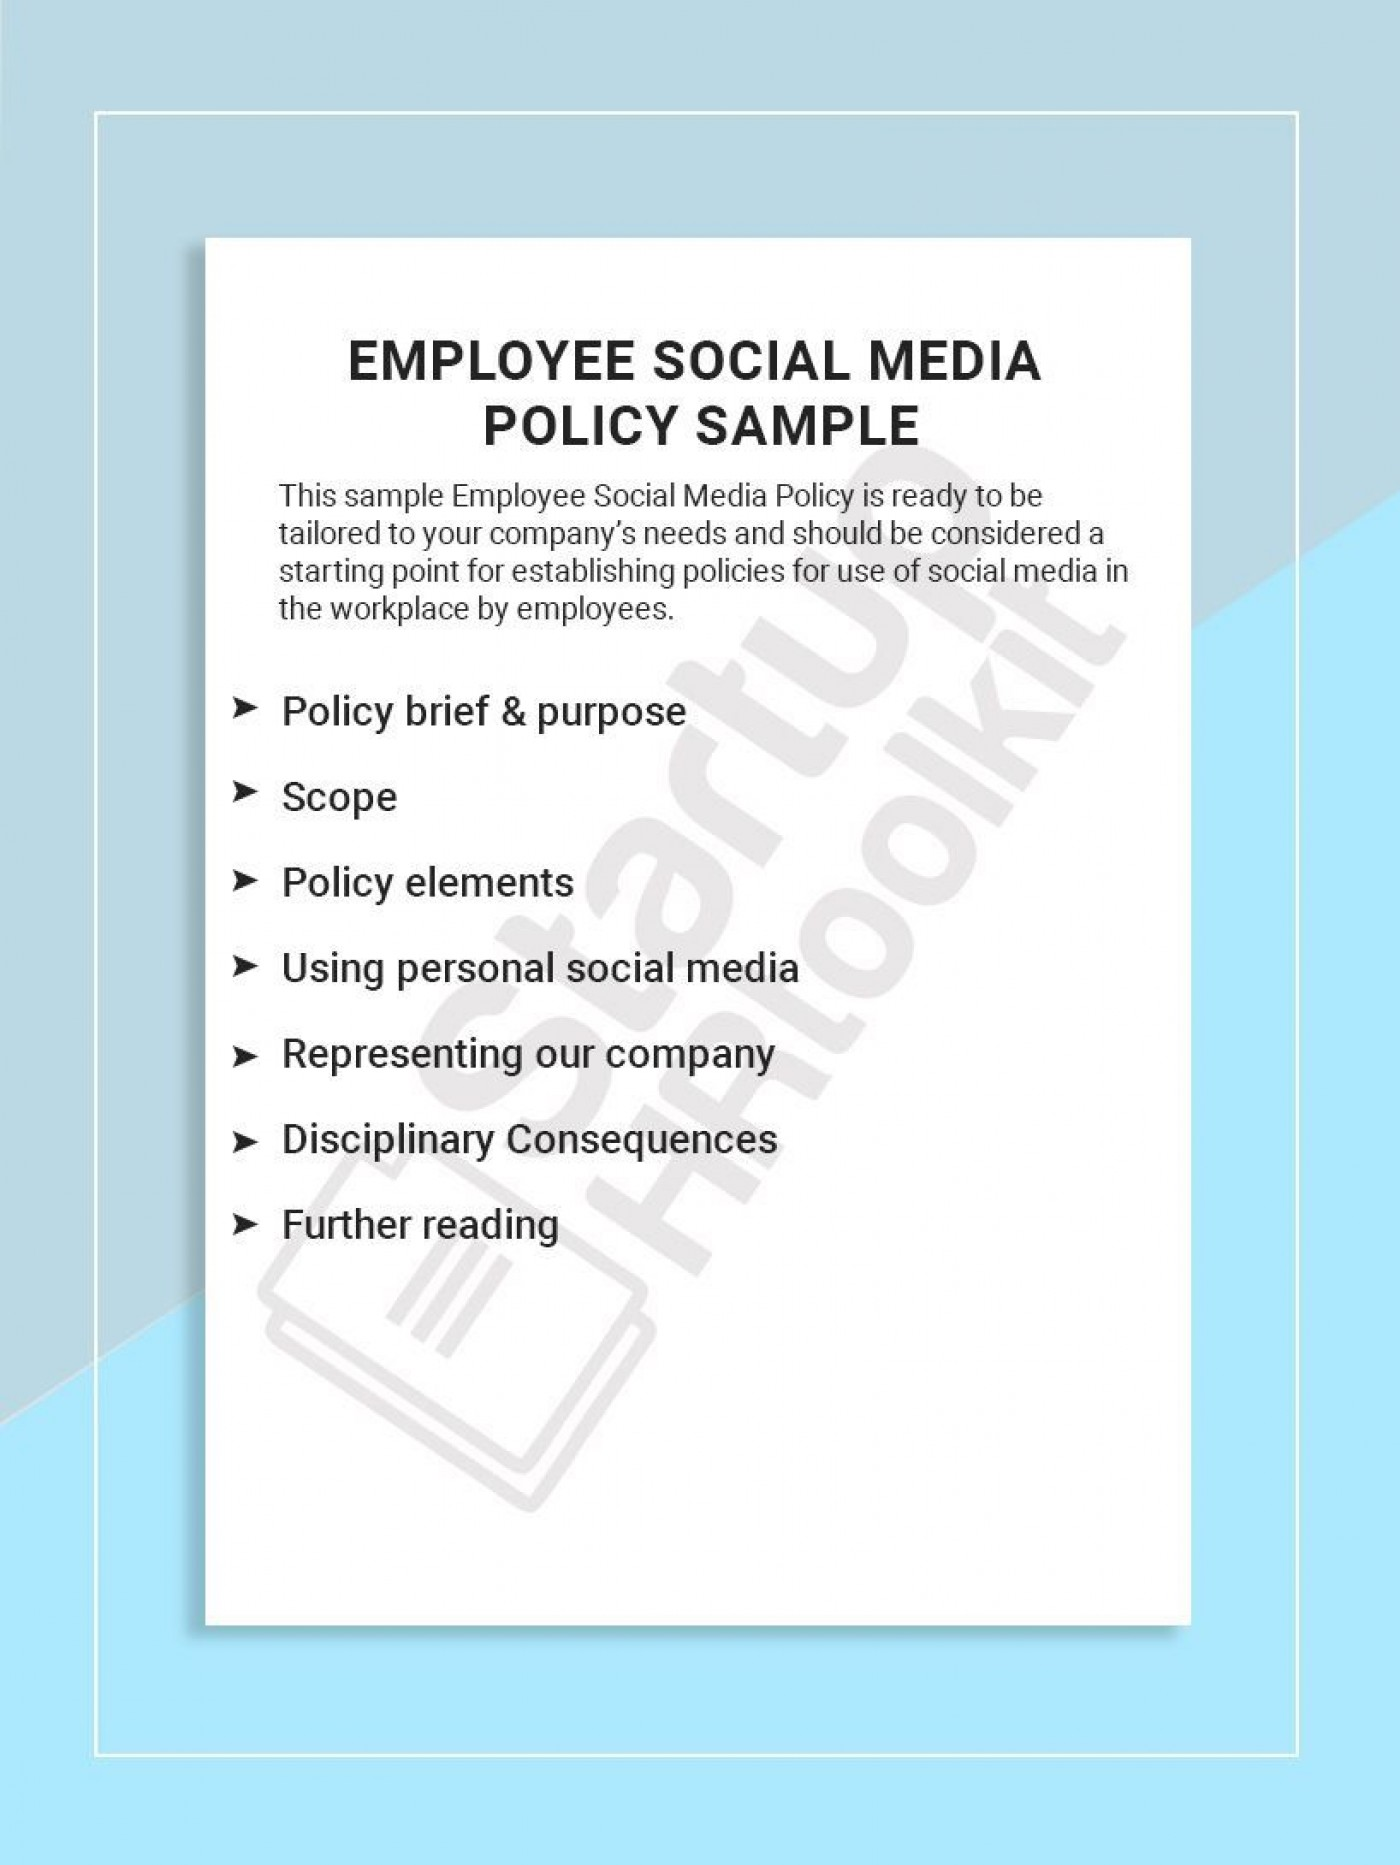 001 Best Social Media Policie Template High Def  Simple Policy Australia Example For Small Busines1400